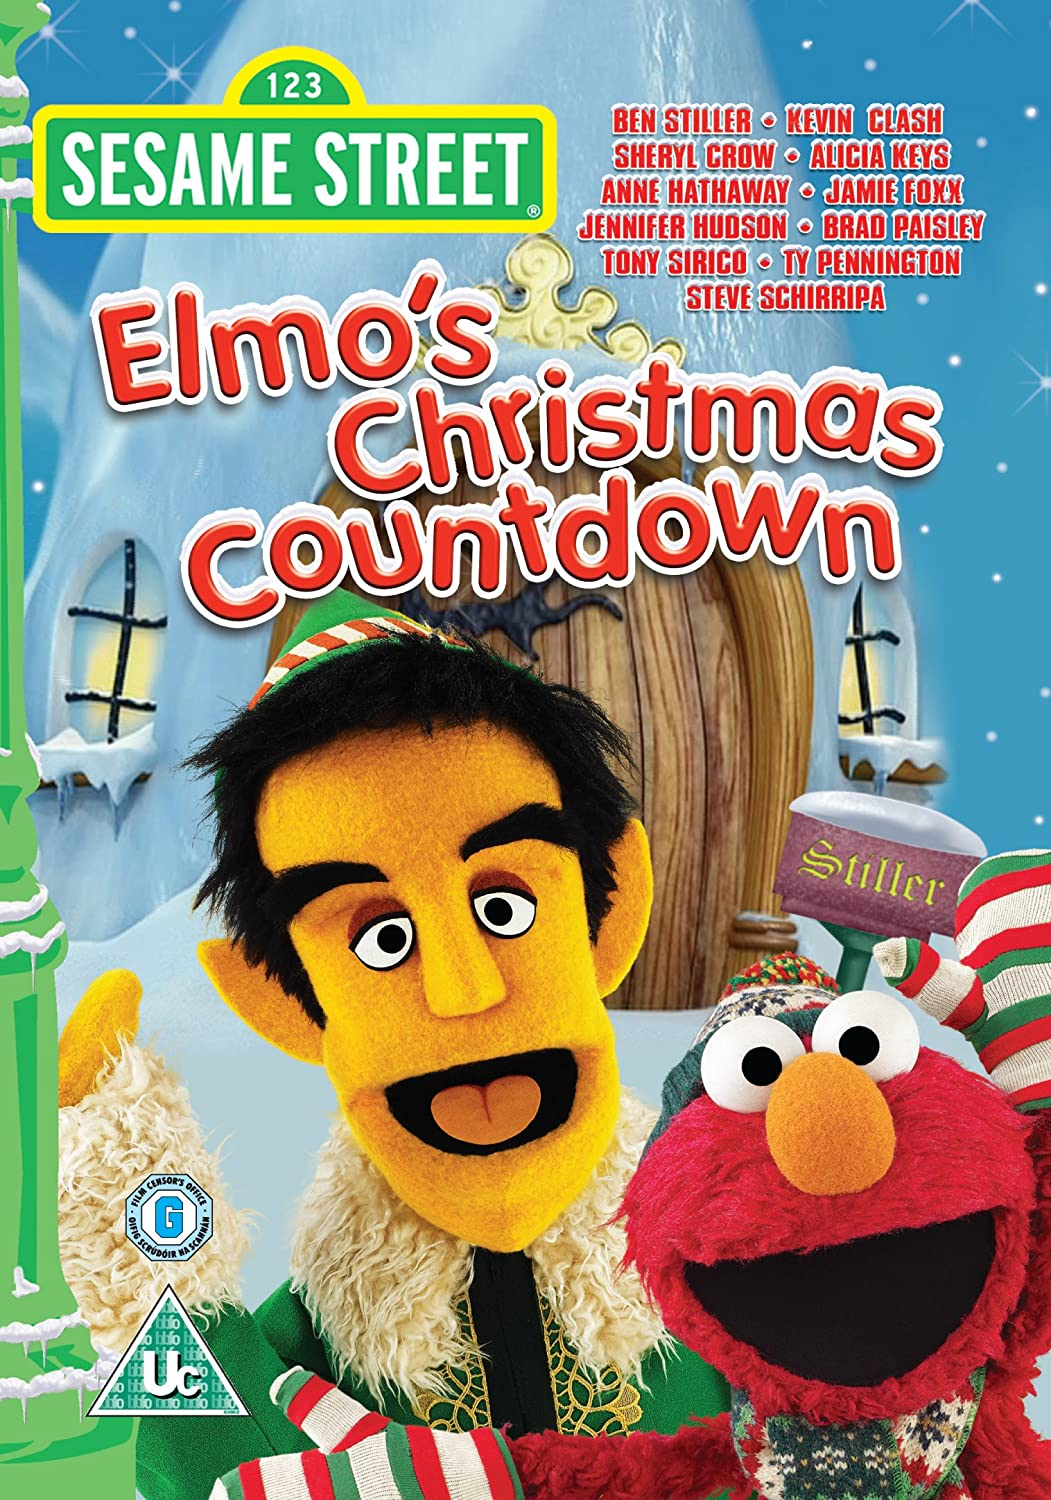 Elmo's Christmas Countdown [DVD]: Amazon.co.uk: Gary Halvorson ...